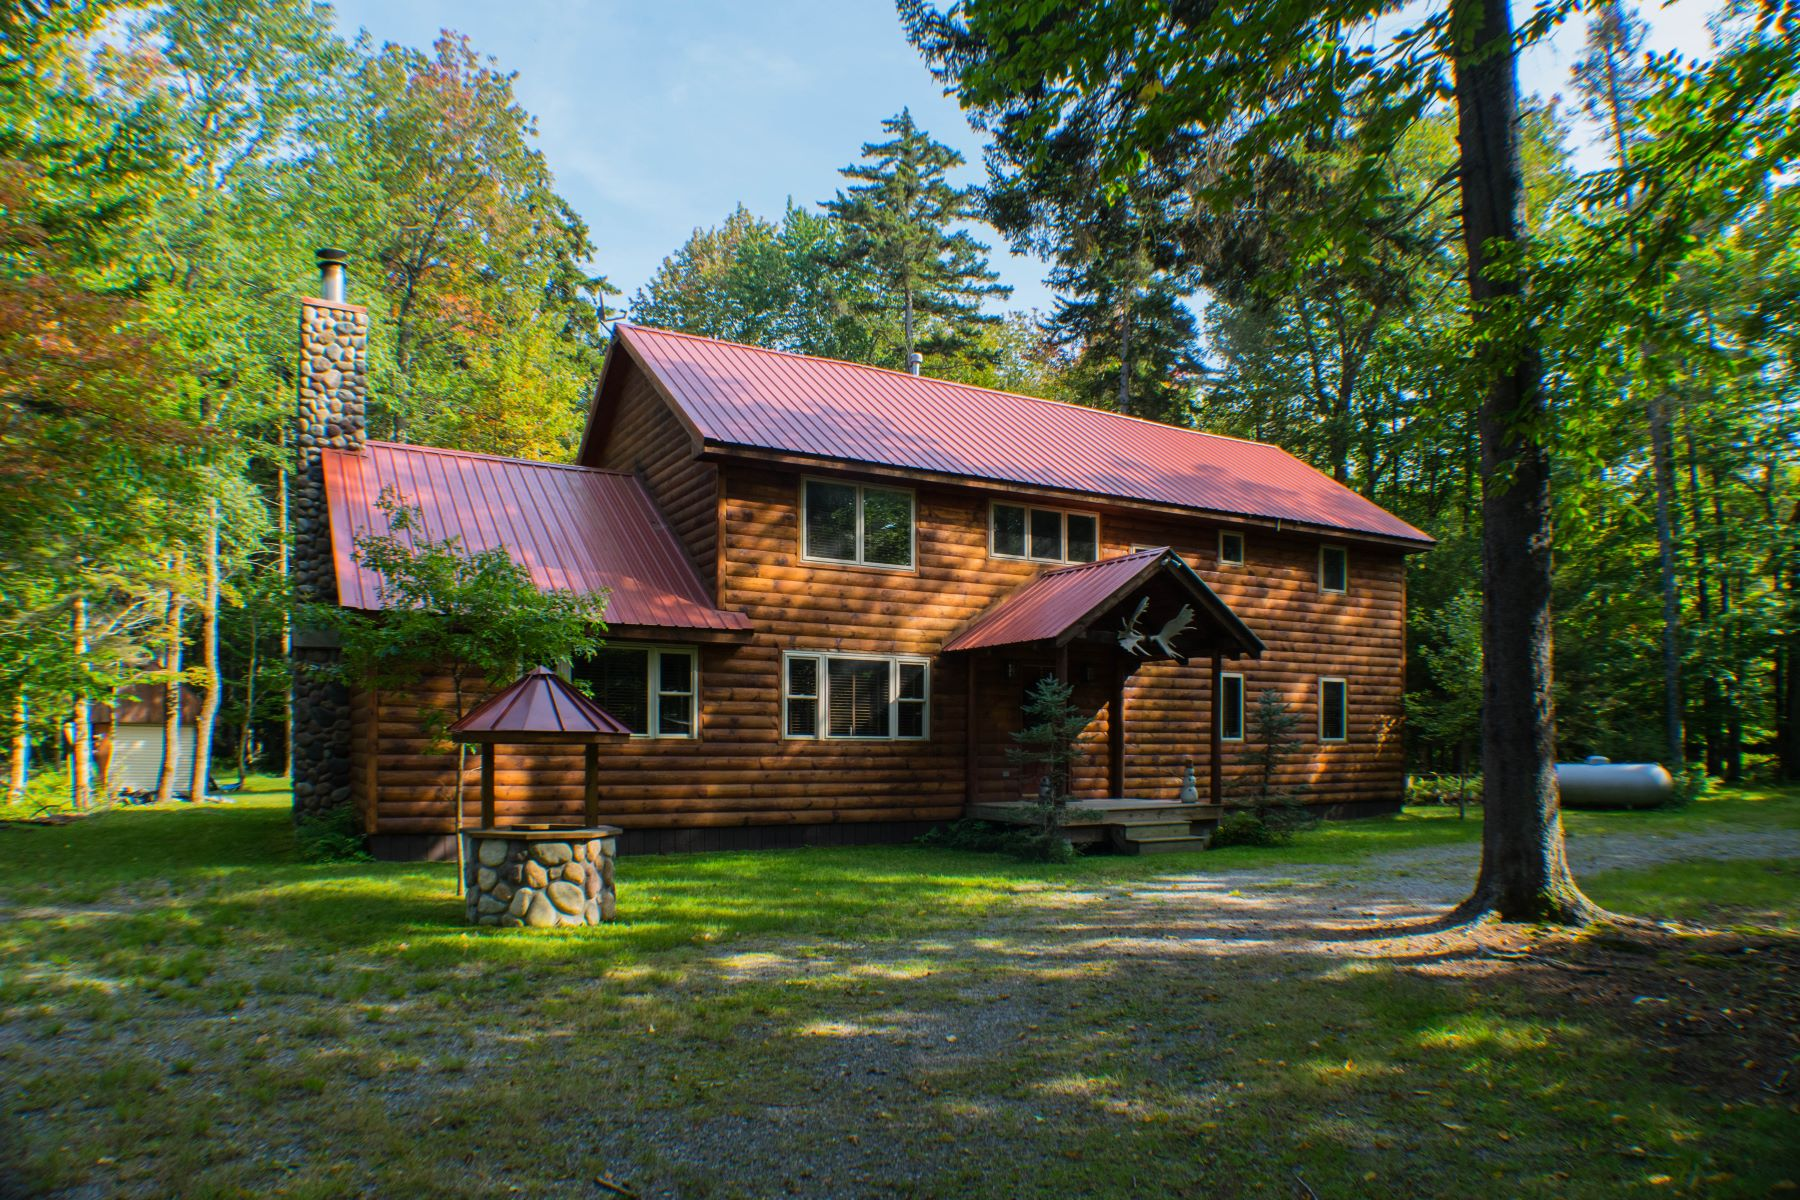 Casa Unifamiliar por un Venta en DiAntonio 171 Darts Lake Road Big Moose, Nueva York 13331 Estados Unidos